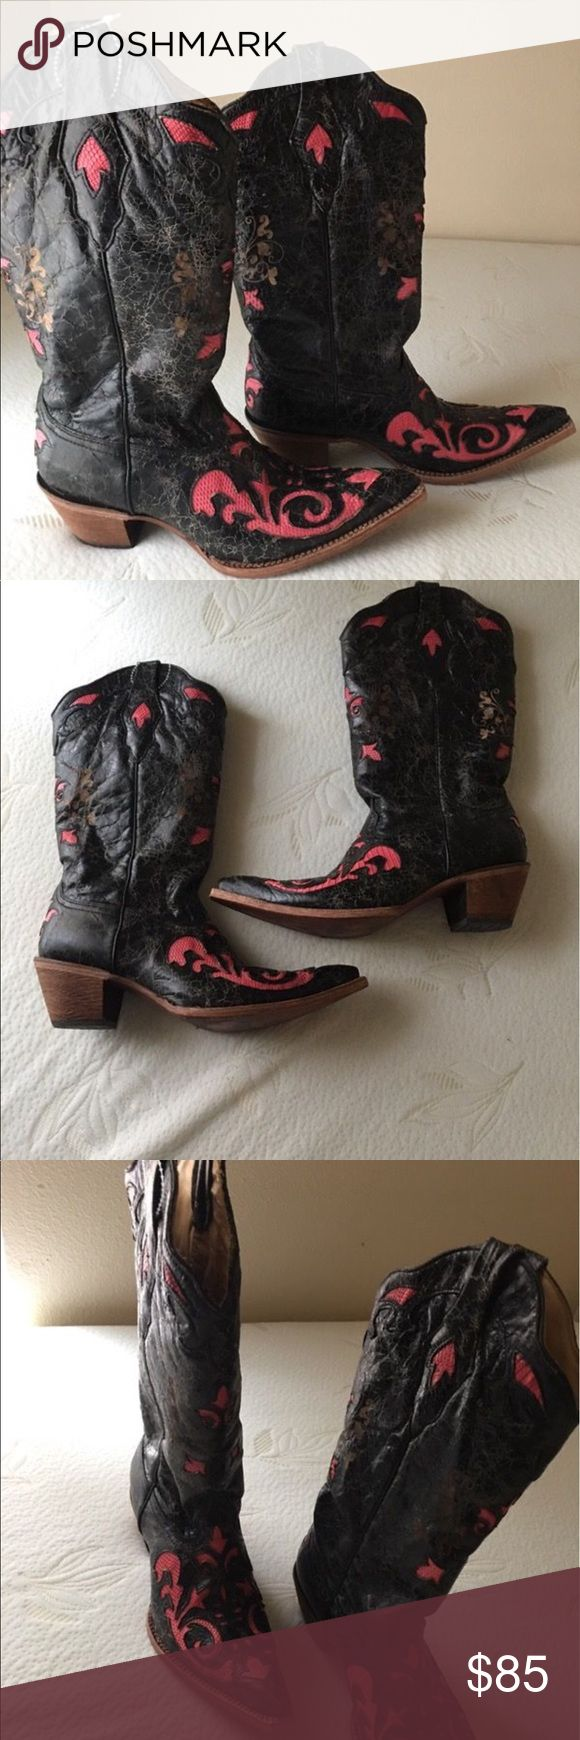 Brand New Coral Cowboy Boots-NWT Brand new, never worn. Purchased from Country Outfitters for $250. Genuine leather, pink lizard inlay. Size 10 Shoes Heeled Boots